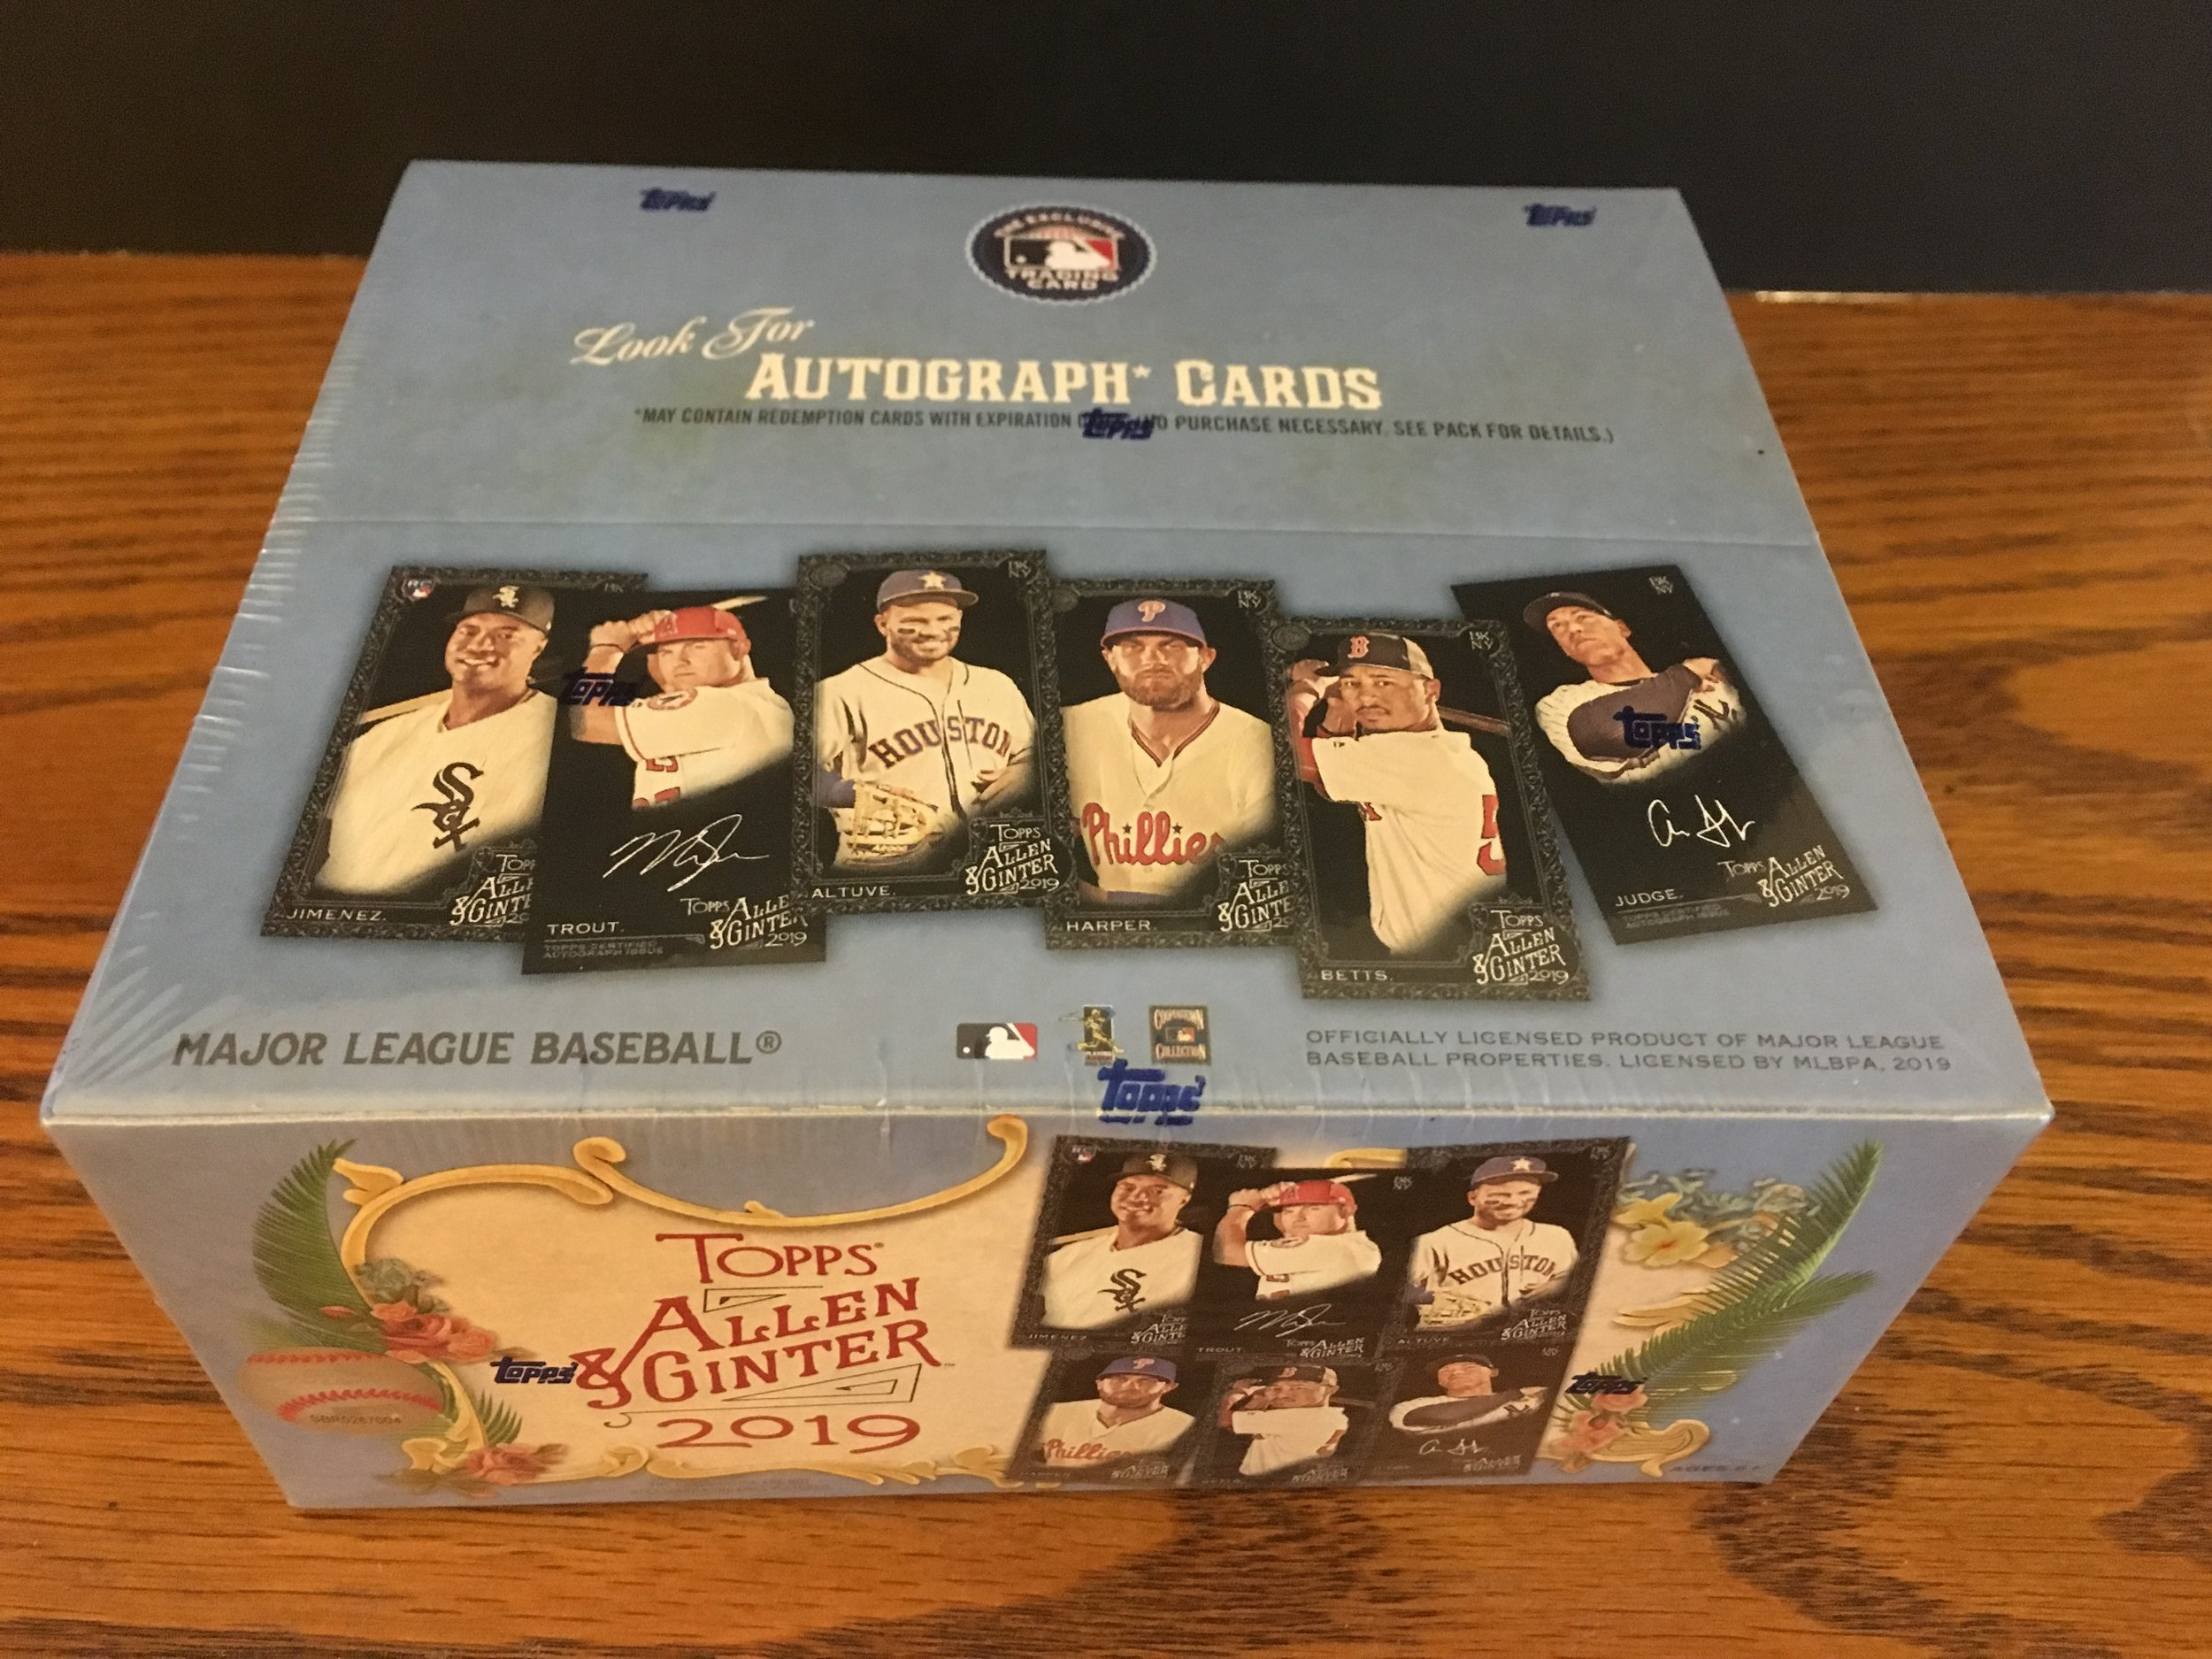 2019-Topps-Allen&Ginter-box.JPG